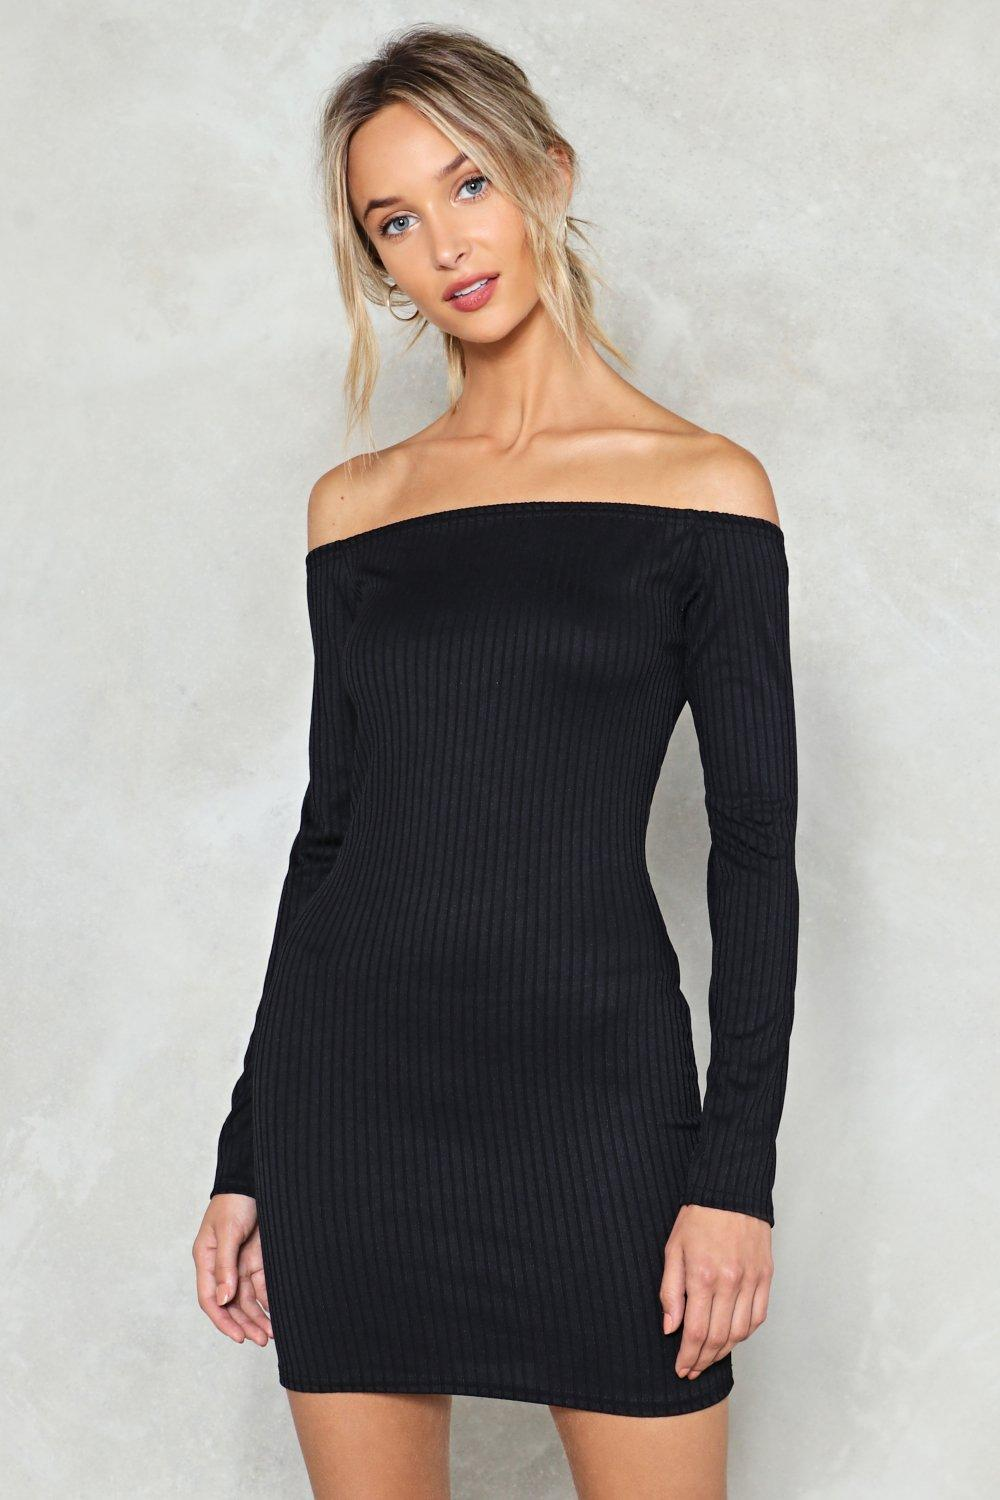 On and Off Ribbed Off the Shoulder Dress | Nasty Gal